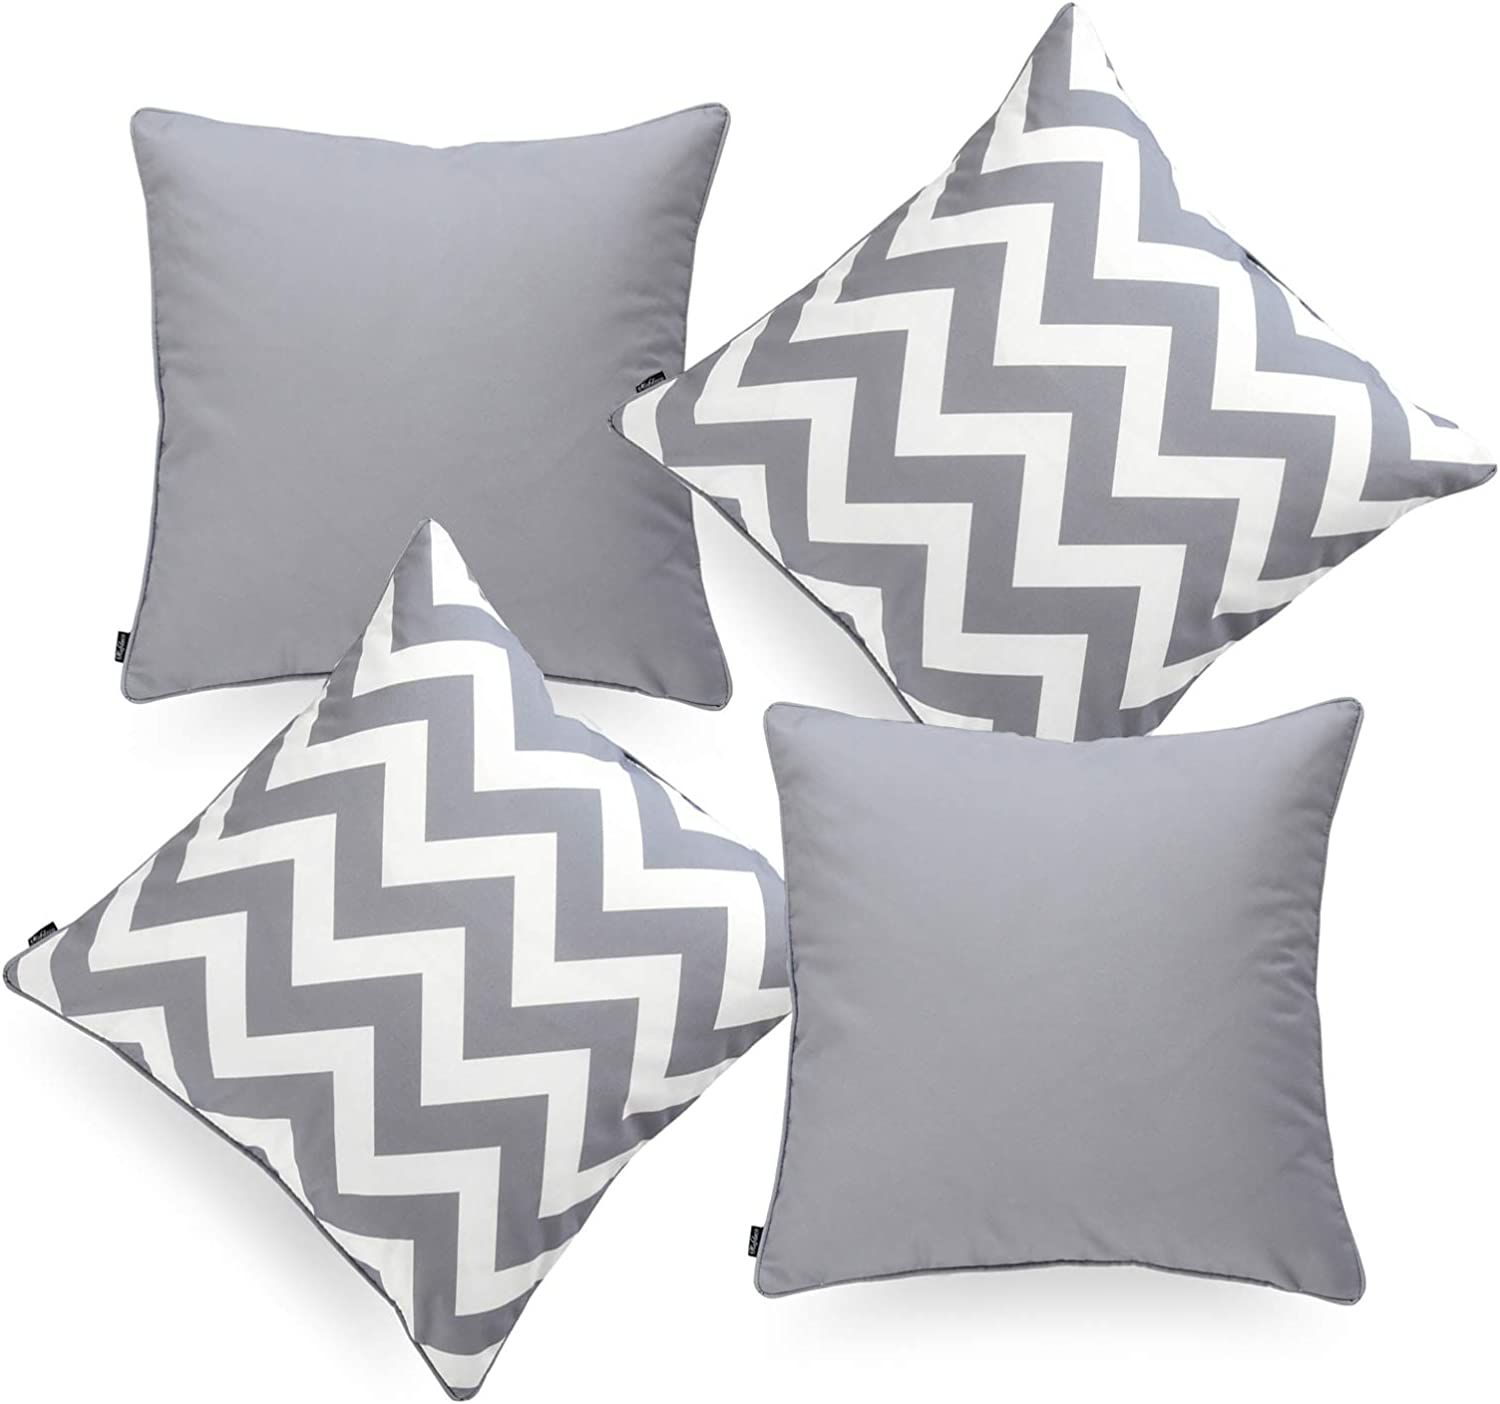 Hofdeco Indoor Outdoor Pillow Cover ONLY, Water Resistant for Patio Lounge Sofa, Gray White Solid Zigzag Chevron, 18 x18 , Set of 4